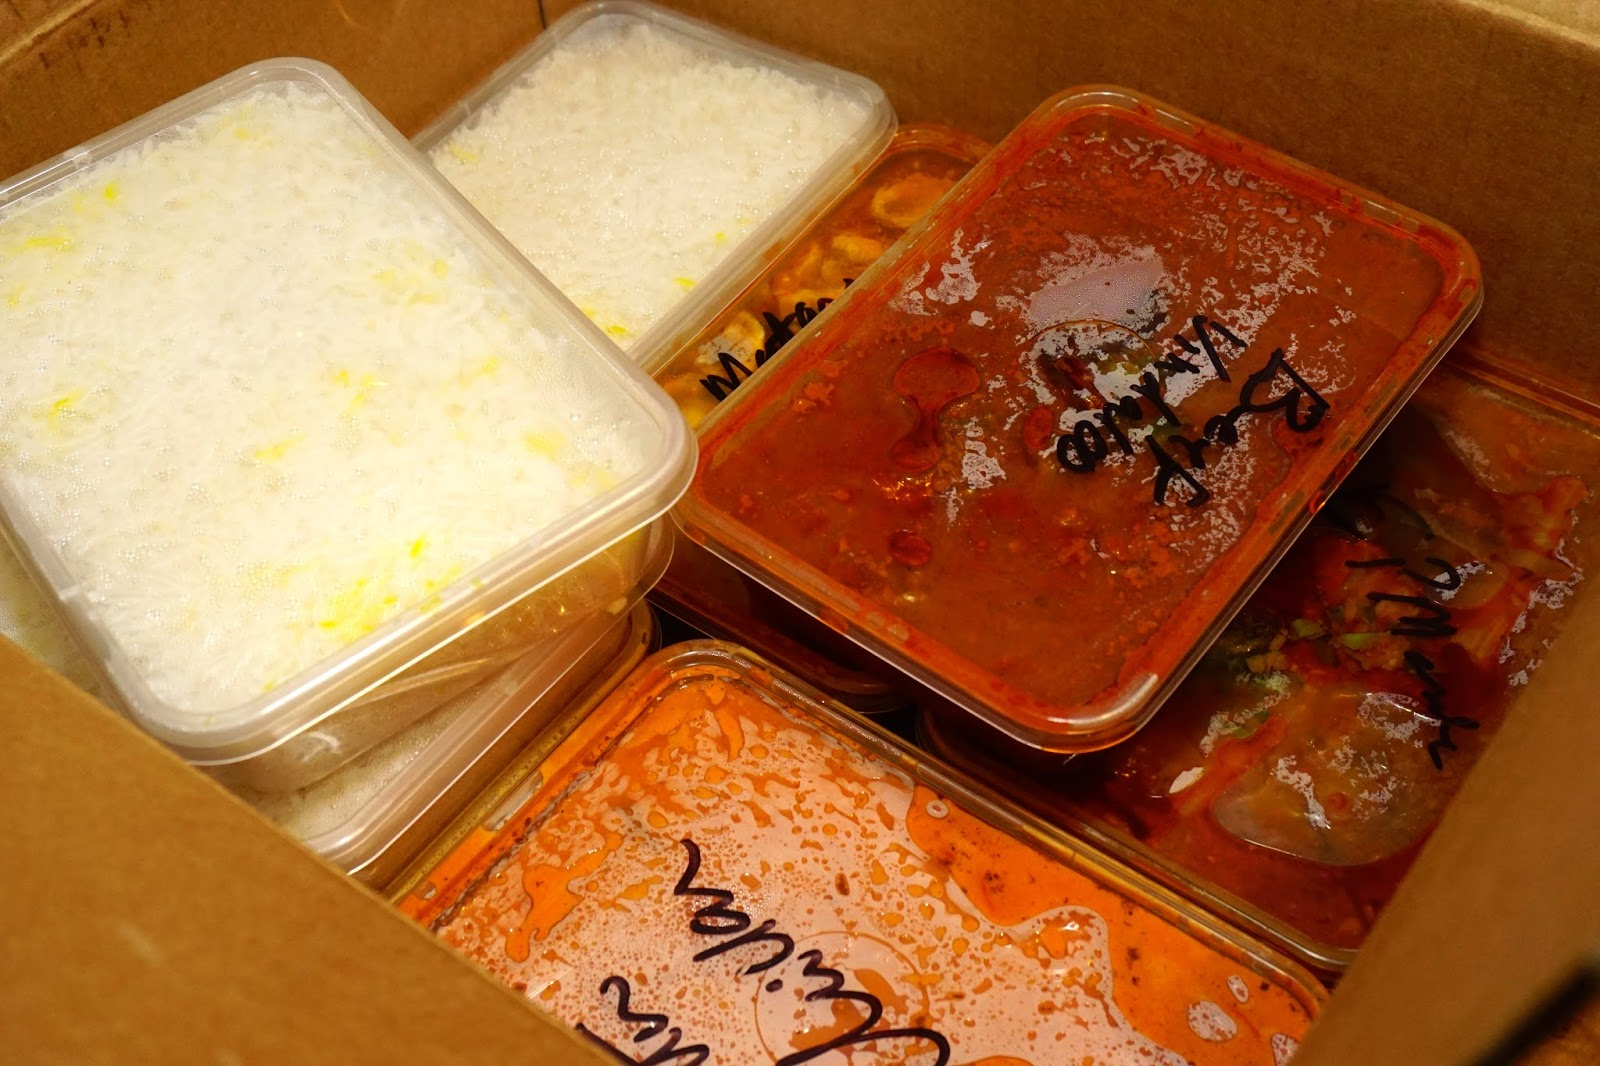 Takeaway food order - Legacy of India, Blackwood